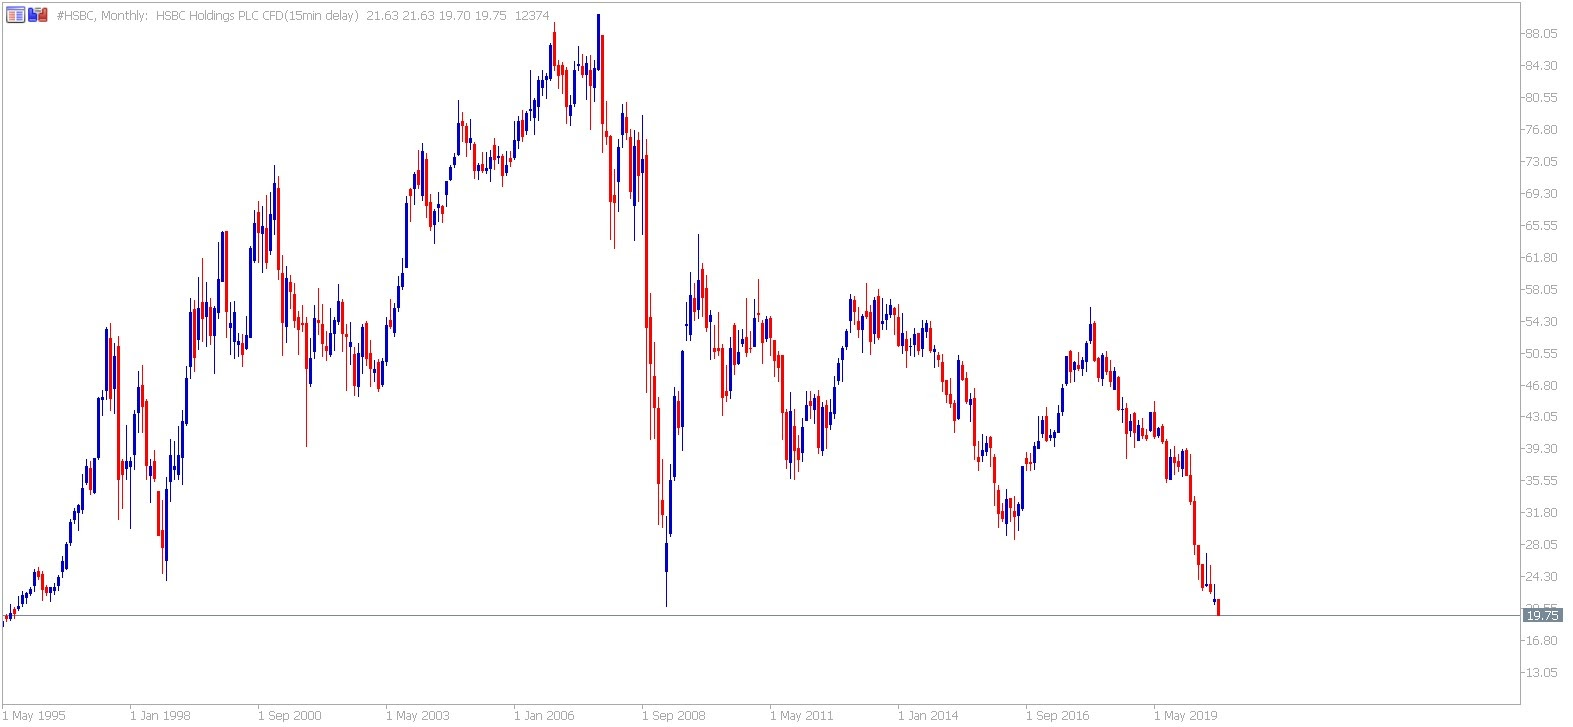 HSBC CFD monthly chart